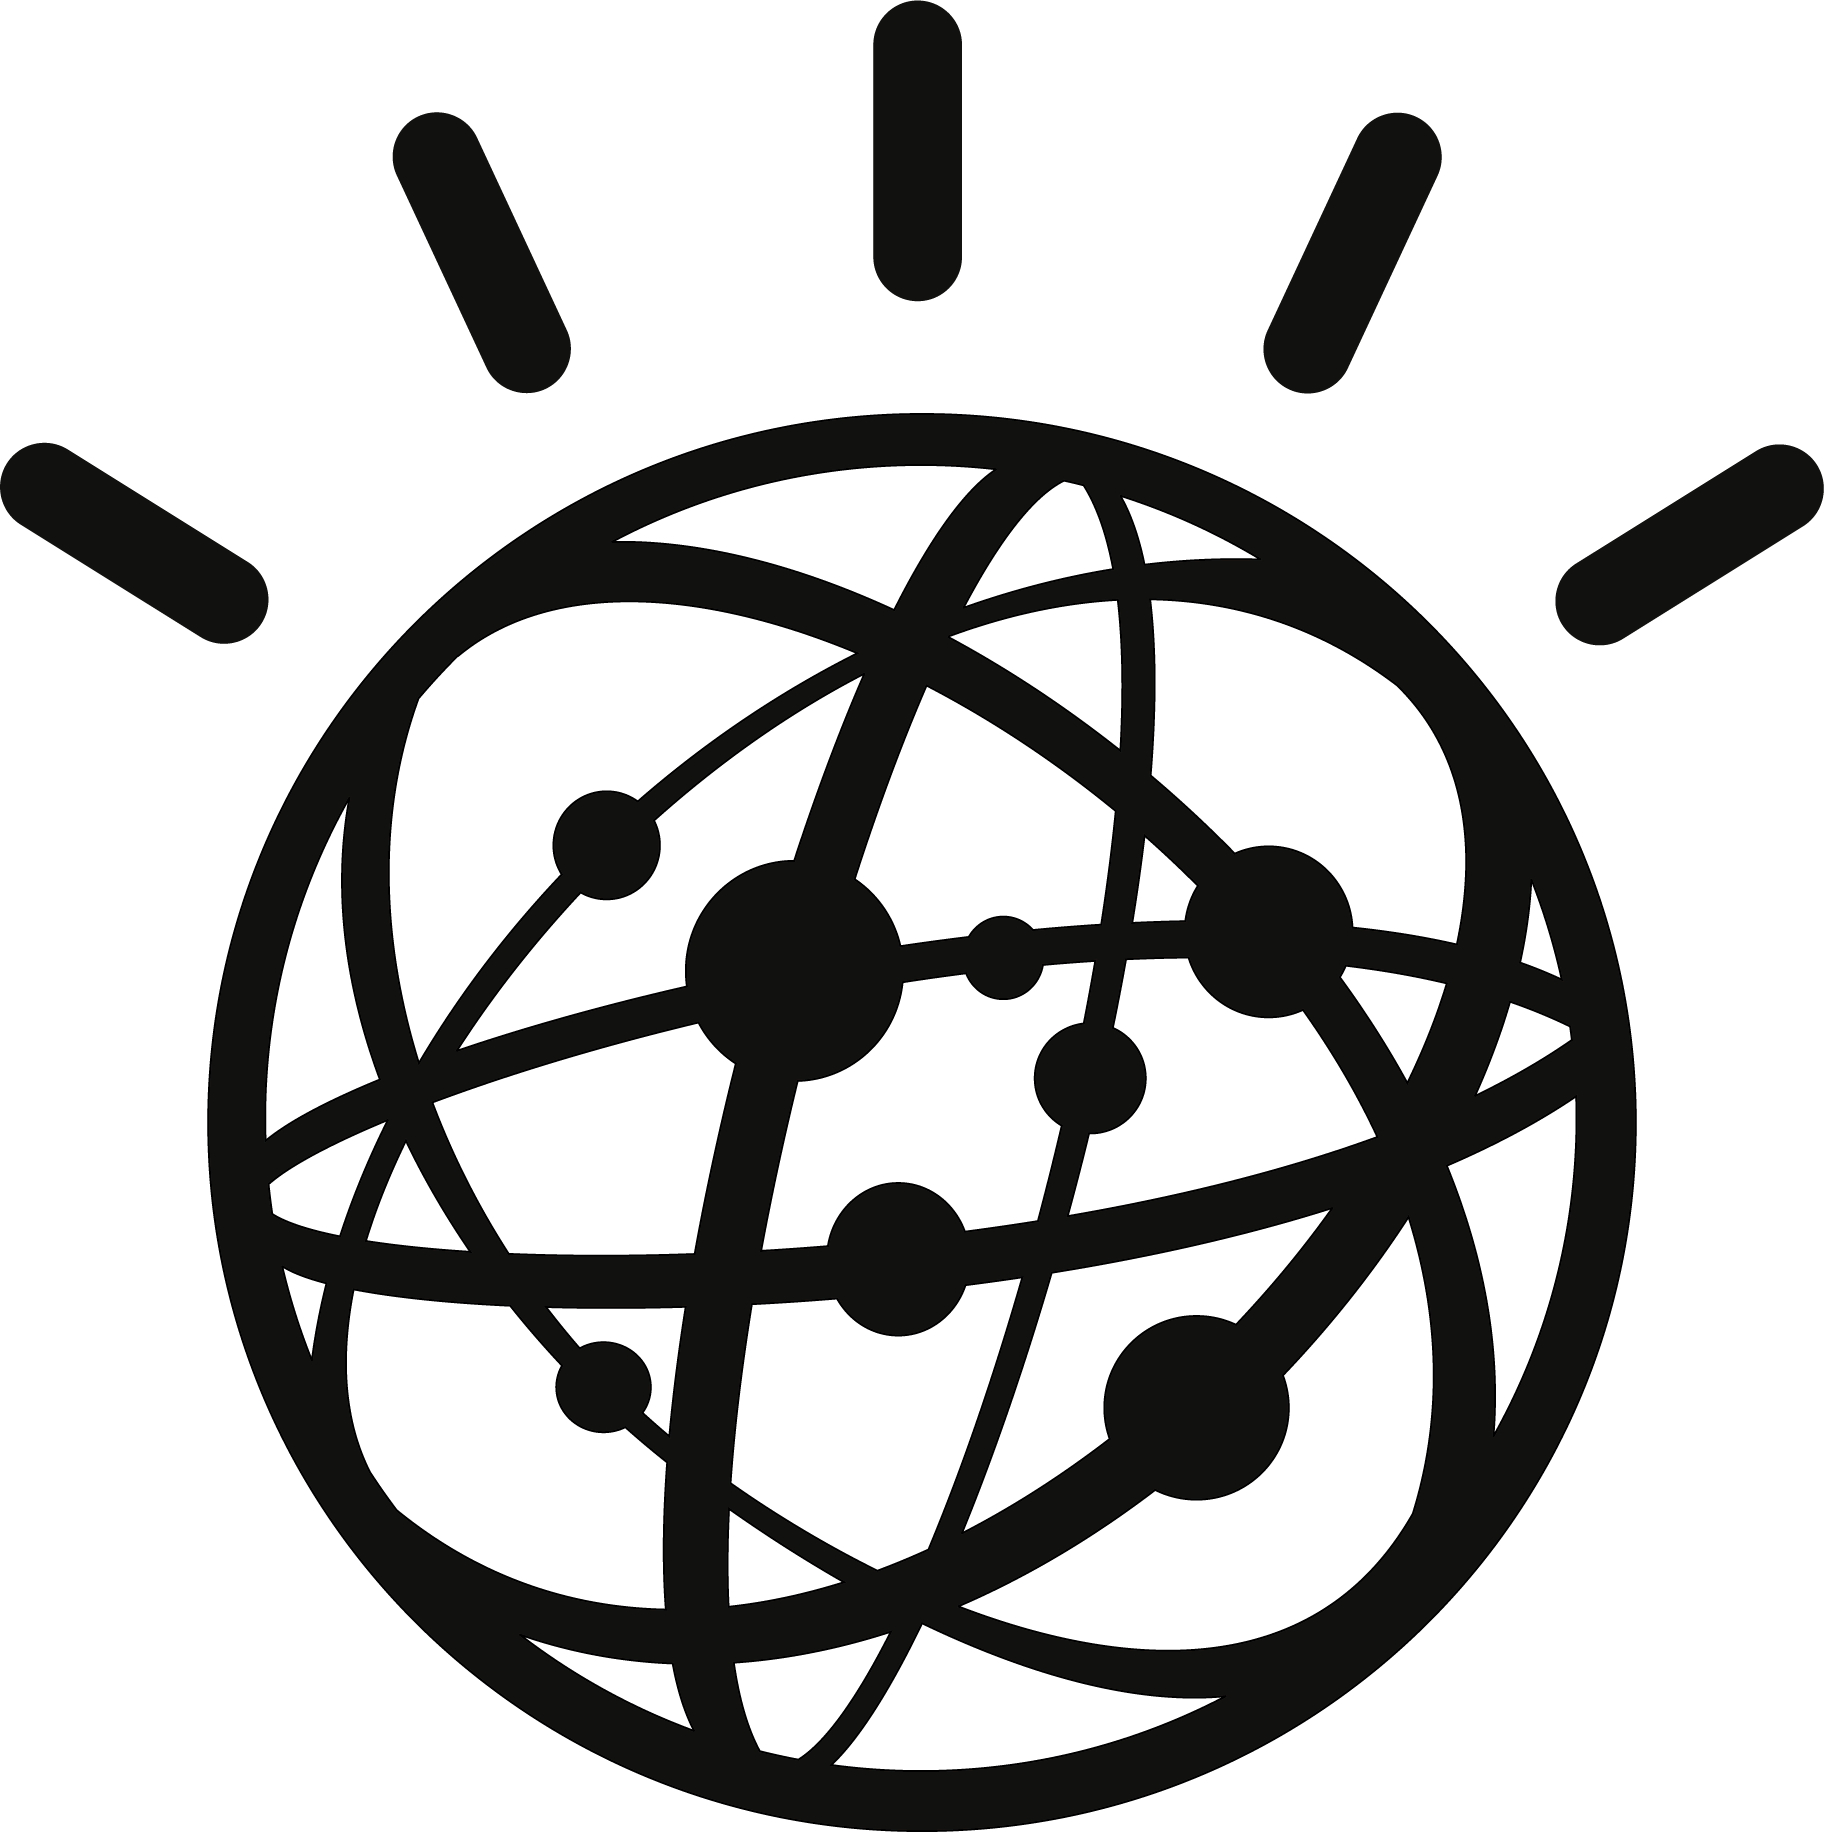 Postscript Watson Ibm Cdr Encapsulated PNG Image High Quality PNG Image